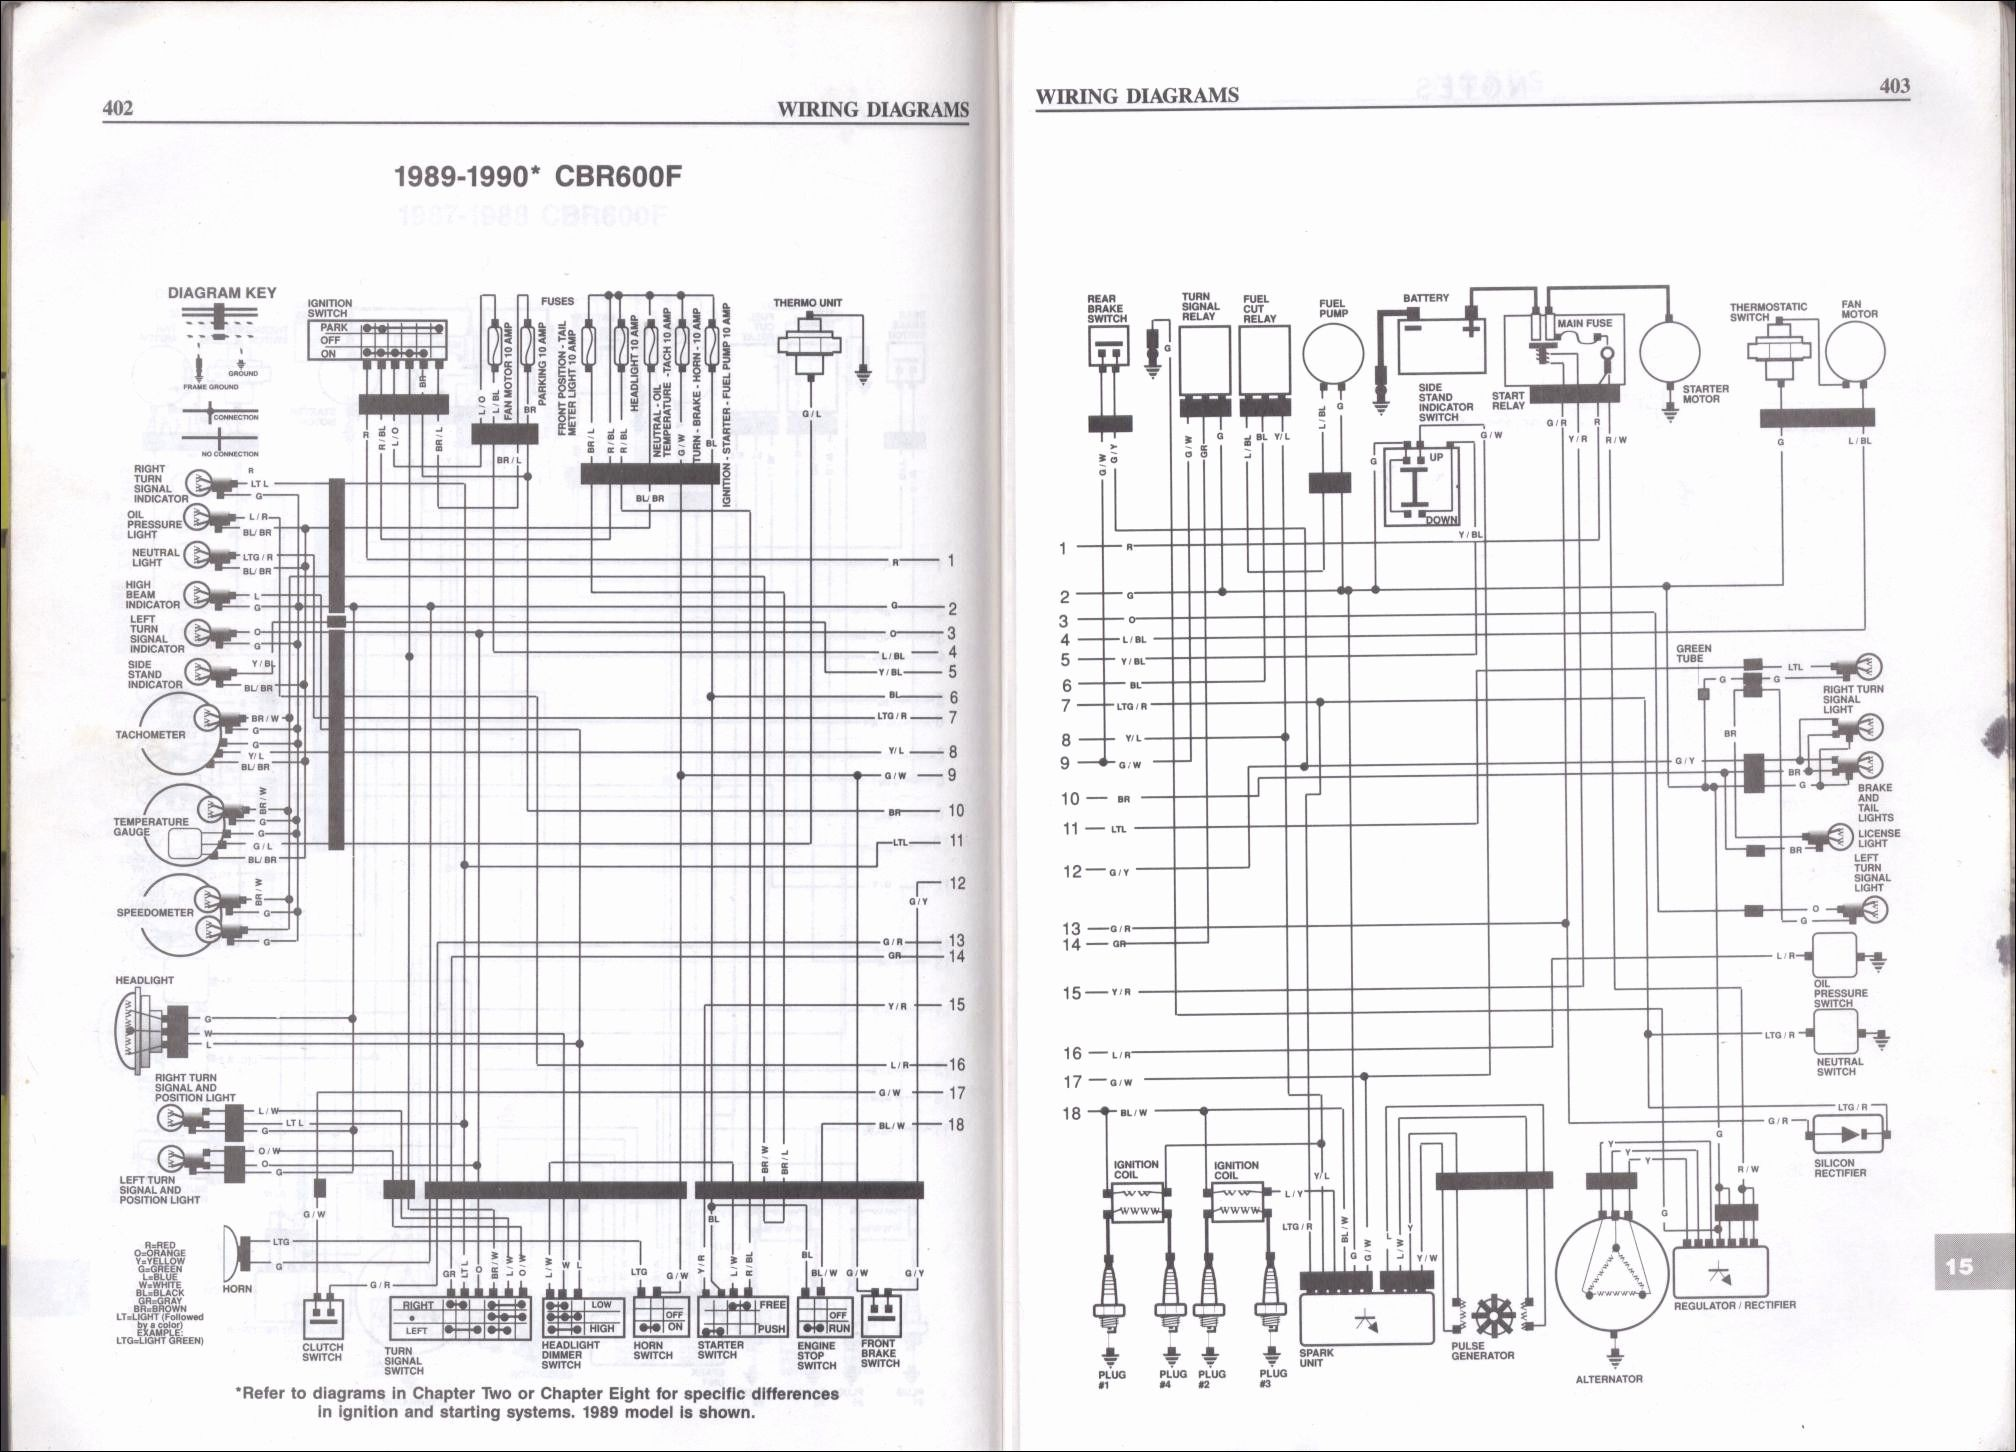 How to Wire A Harley Honda C70 Wiring Diagram Auto Electrical Wiring Diagram Of How to Wire A Harley